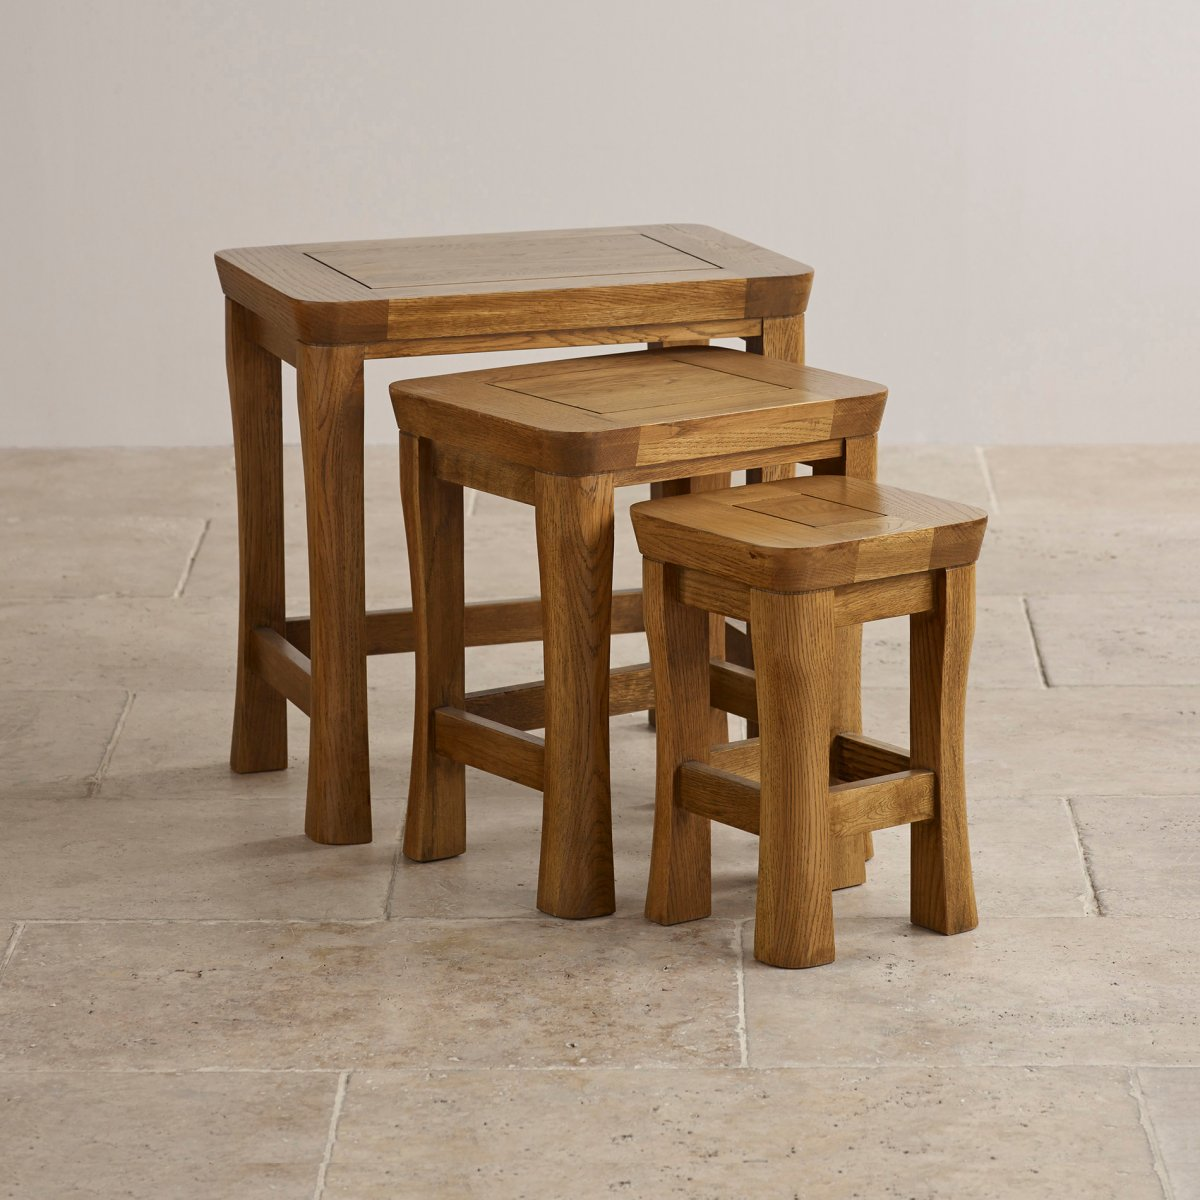 Orrick nest of tables solid oak furniture land